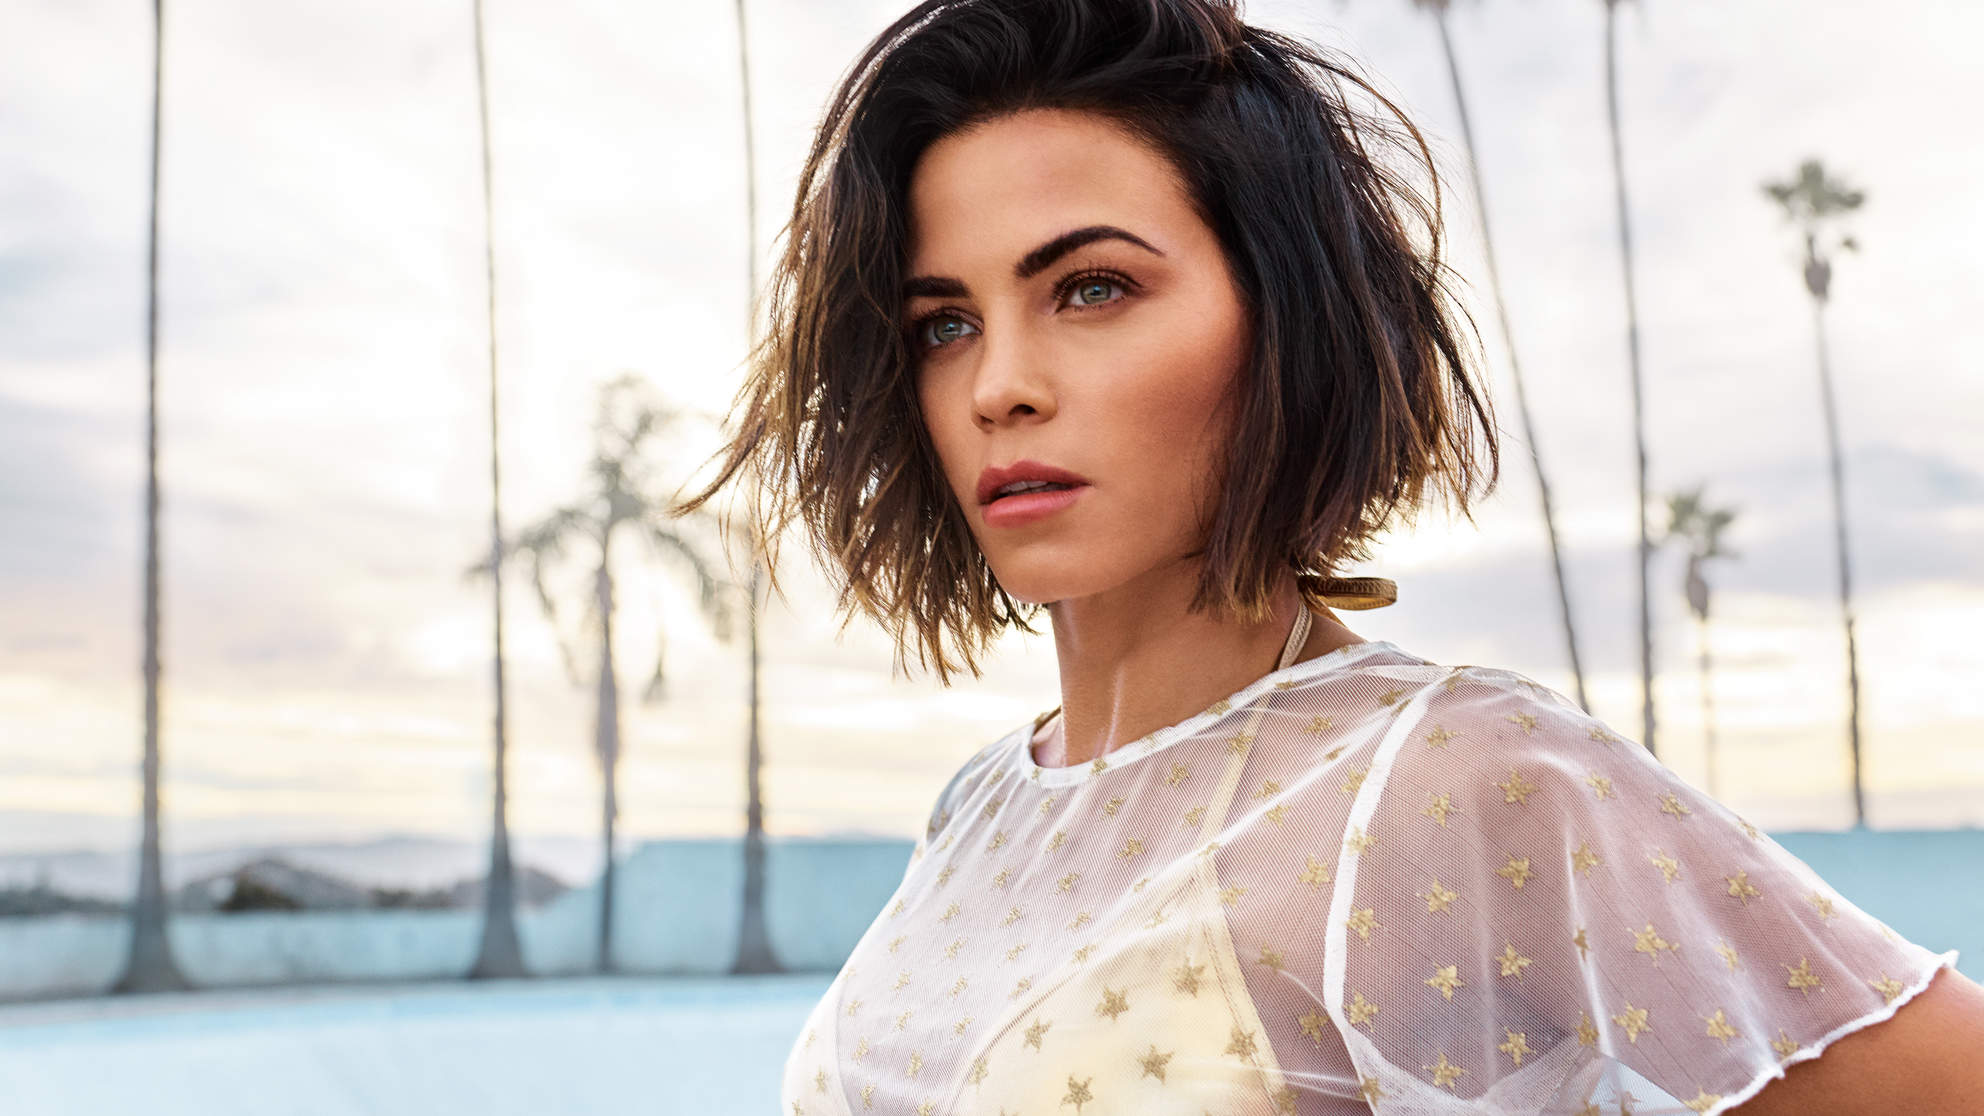 jenna dewan tatum march cover star shirt gold bikini